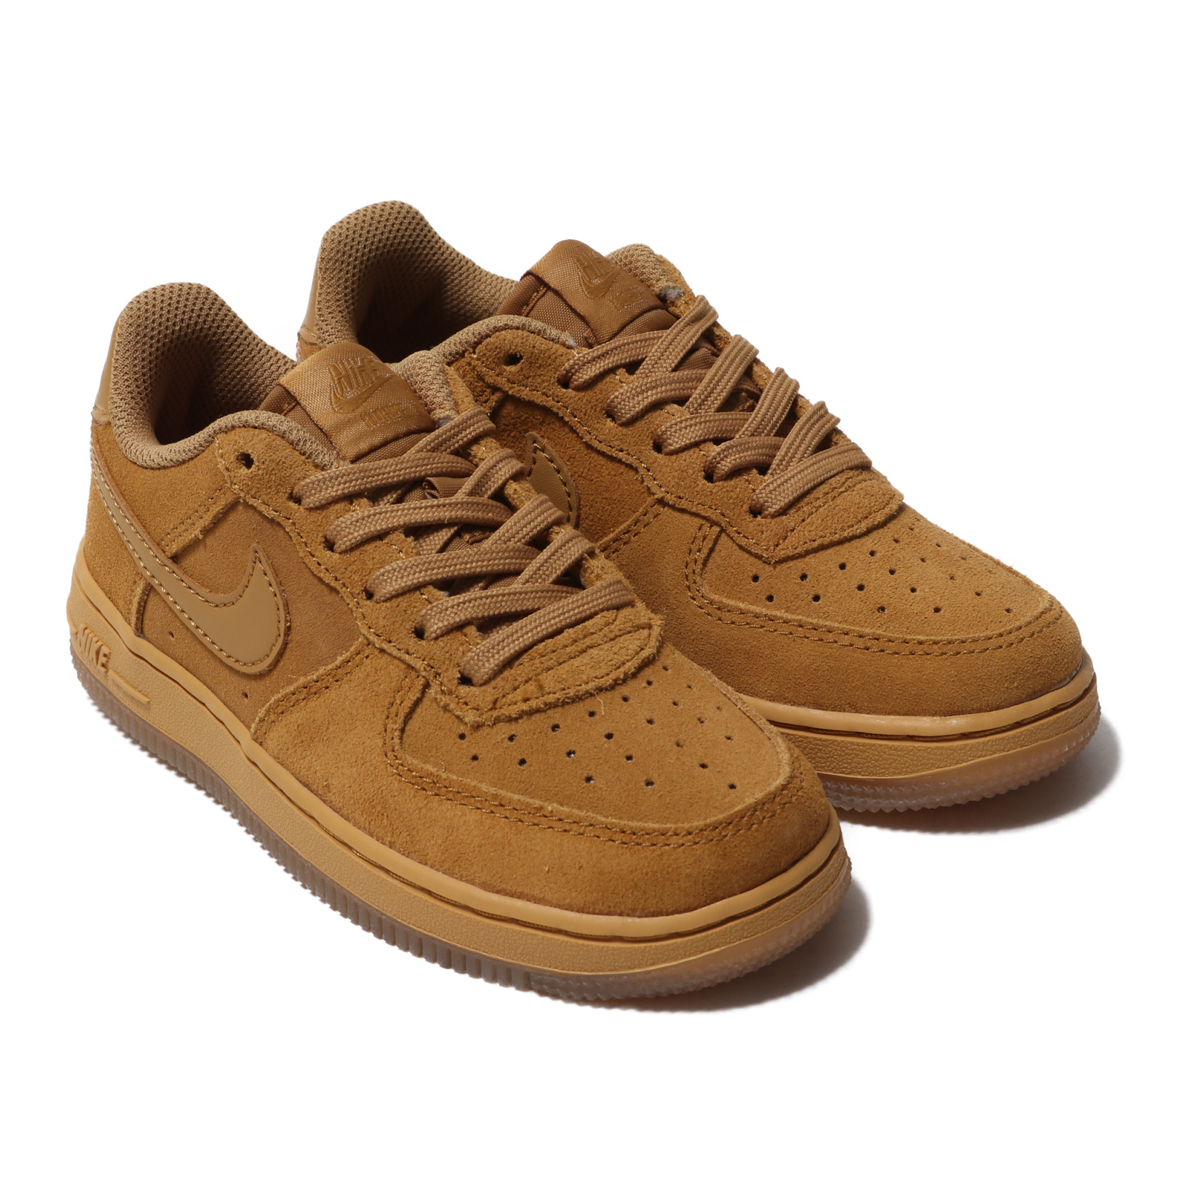 NIKE FORCE 1 LV8 3(PS)(フォース 1 LV8 3 PS) WHEAT/WHEAT-GUM LIGHT BROWN【キッズ スニーカー】19HO-I